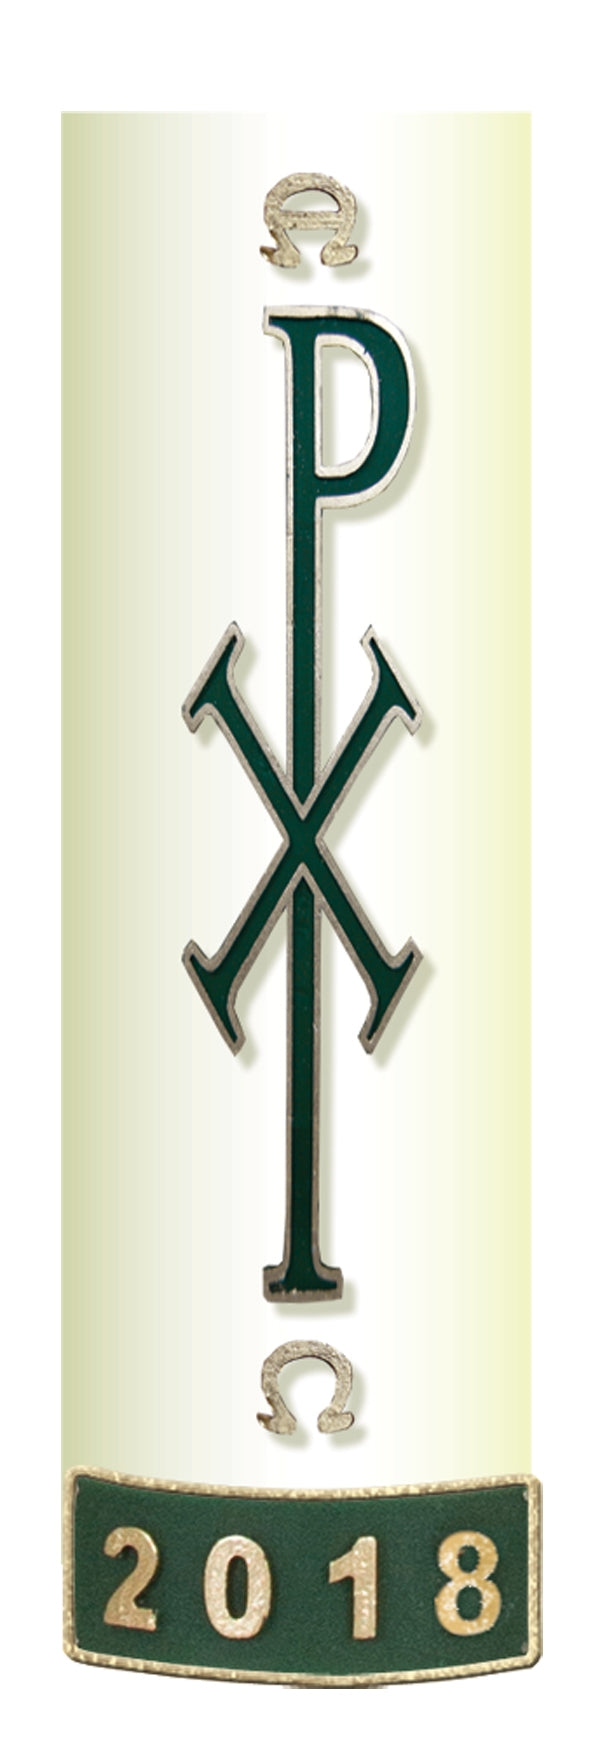 Green Chi-Rho Wax ReliefGreen Chi-Rho Wax Relief